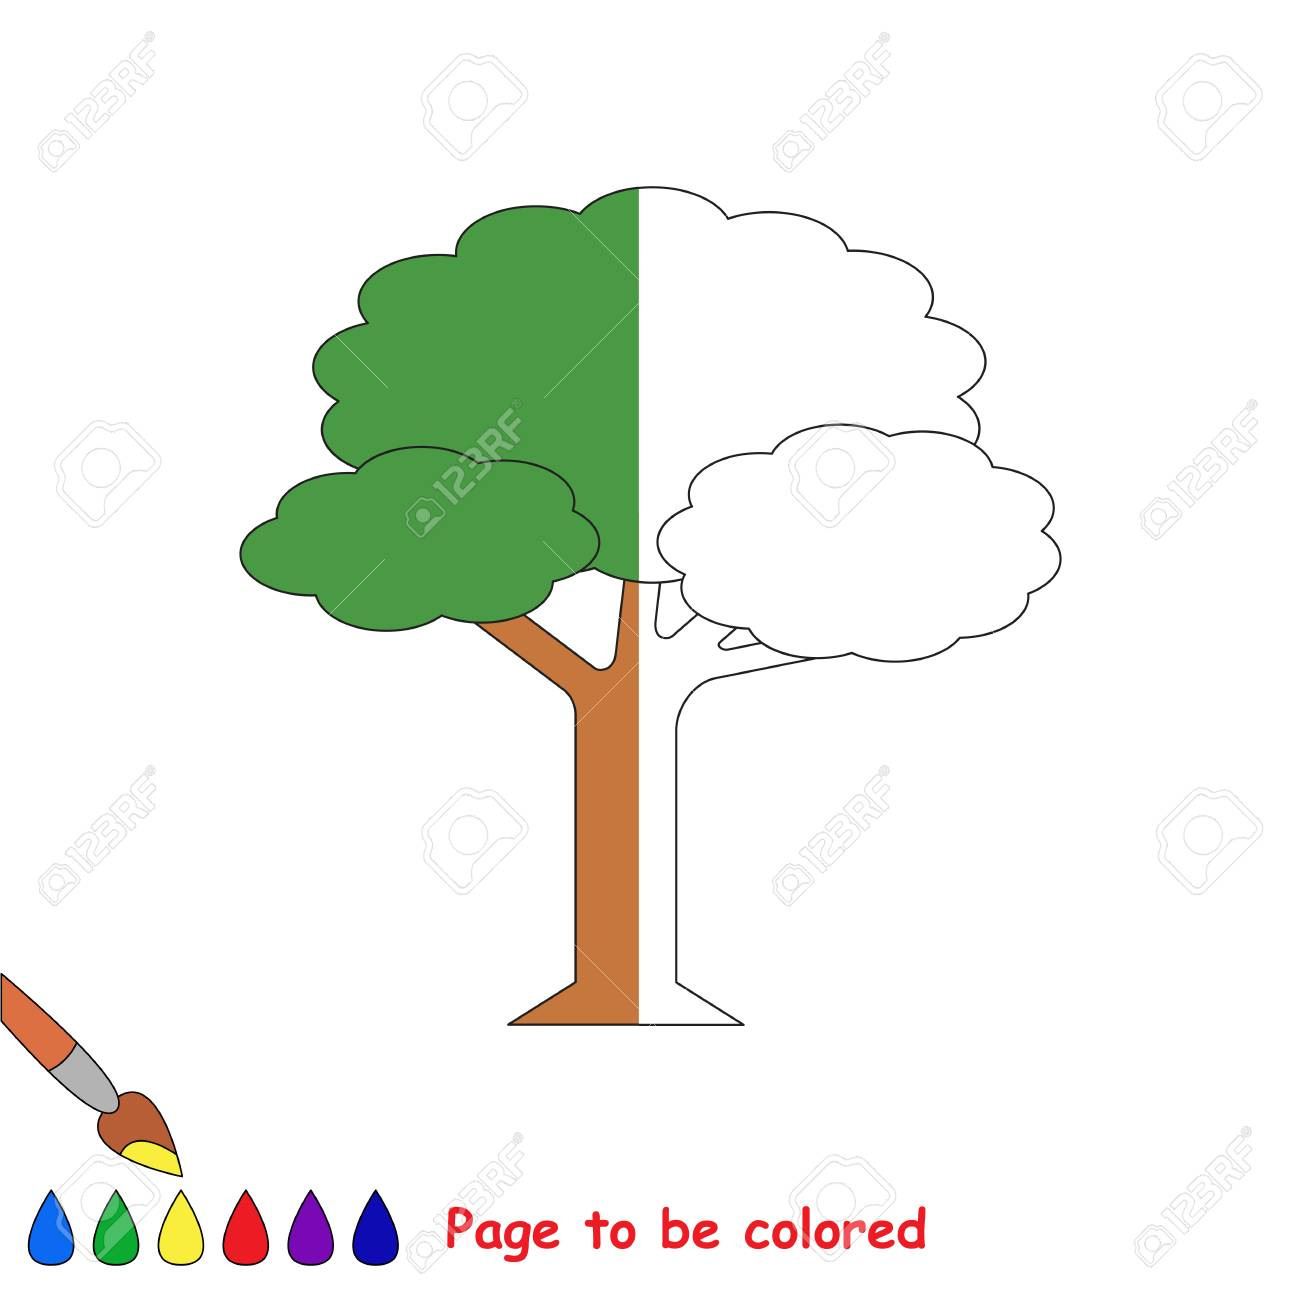 Leaf Tree To Be Colored, The Coloring Book To Educate Preschool ...